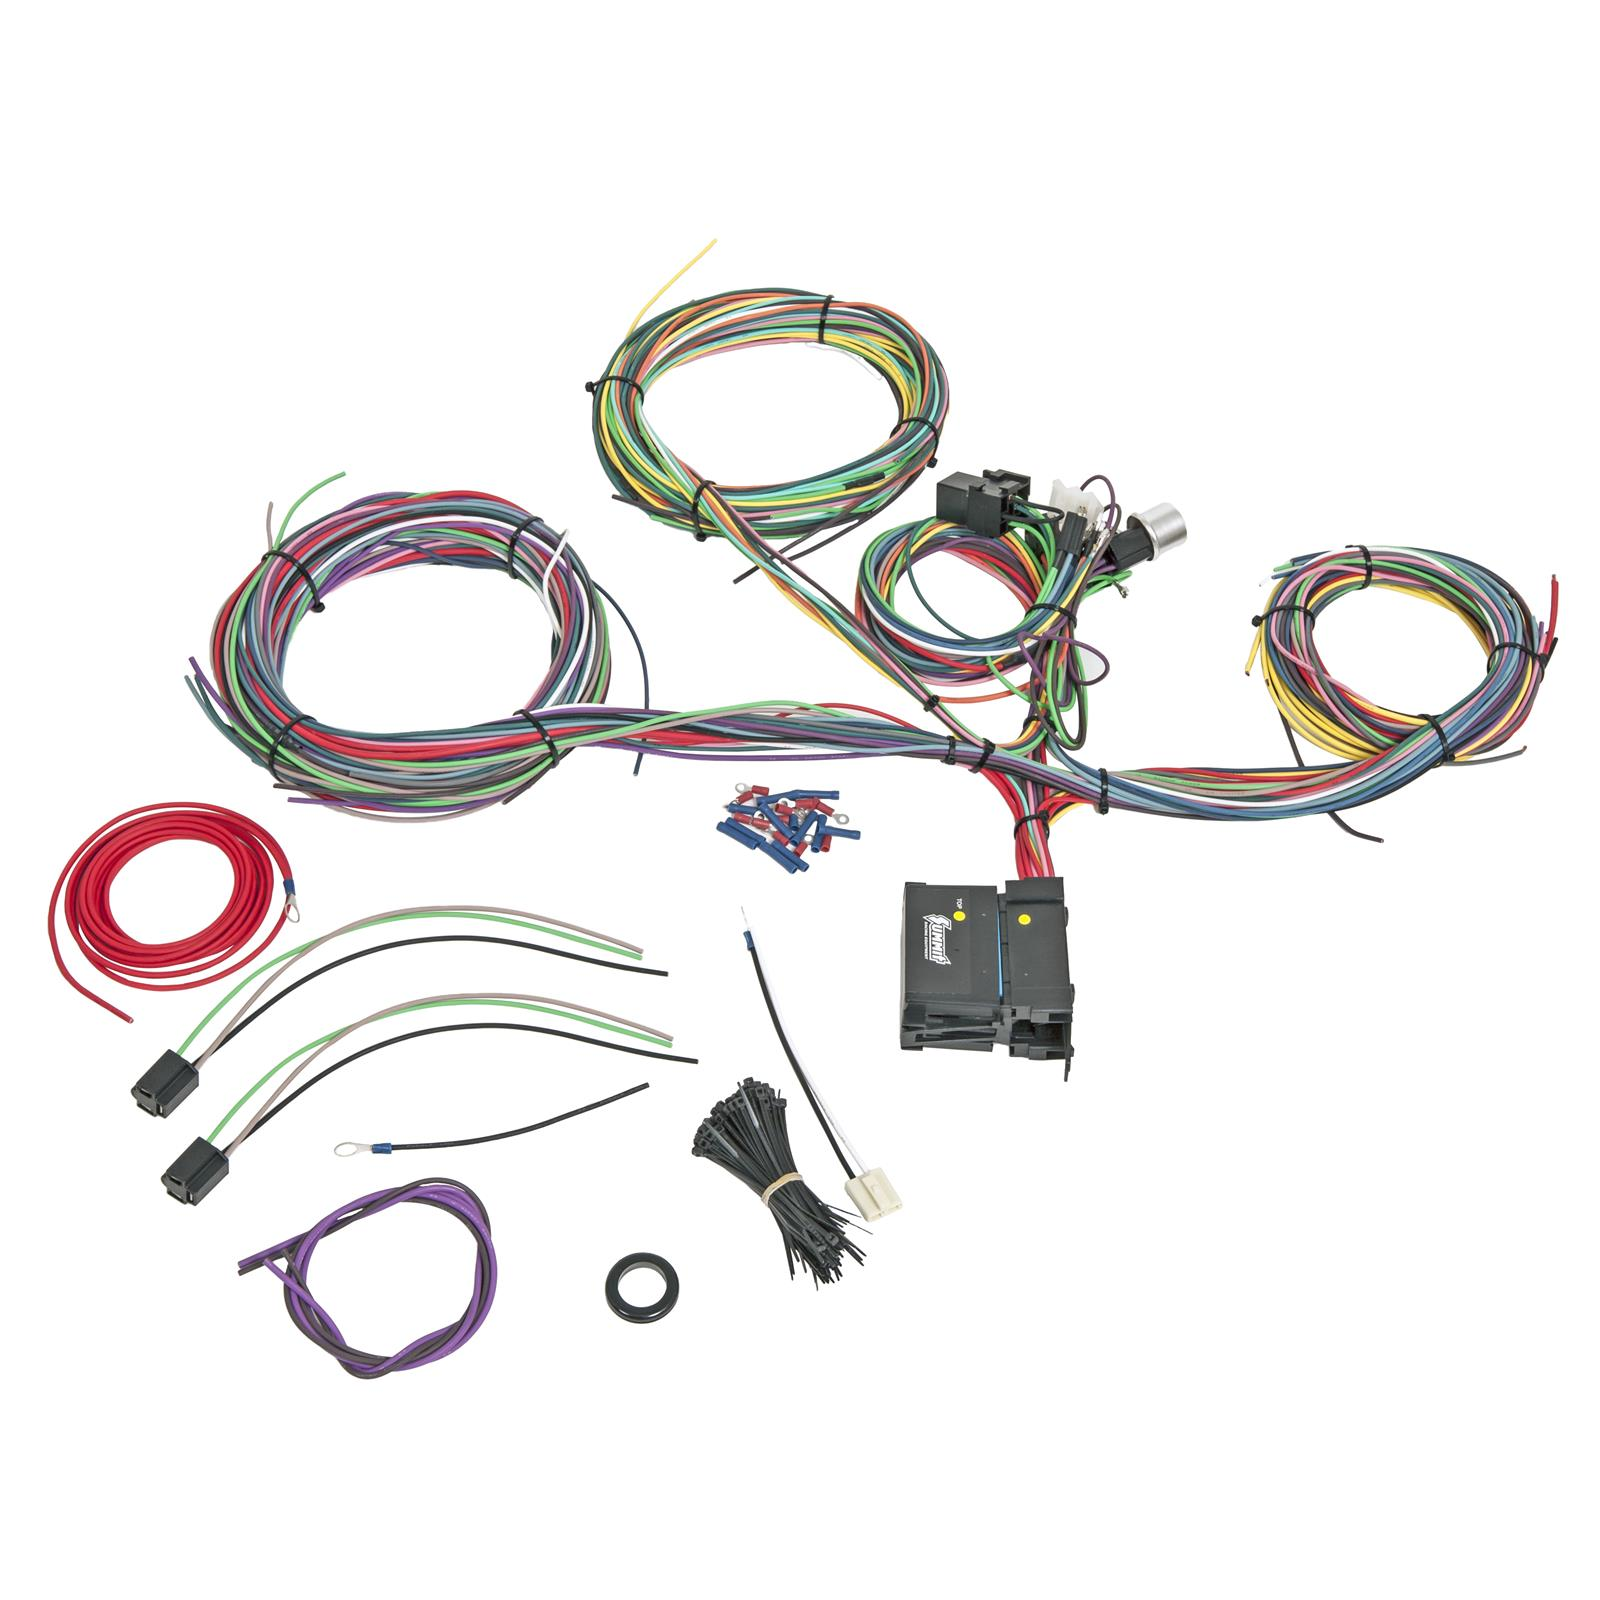 sum 890021_xl summit racing� 18 circuit universal wiring harnesses sum 890021 packard wiring harness at nearapp.co